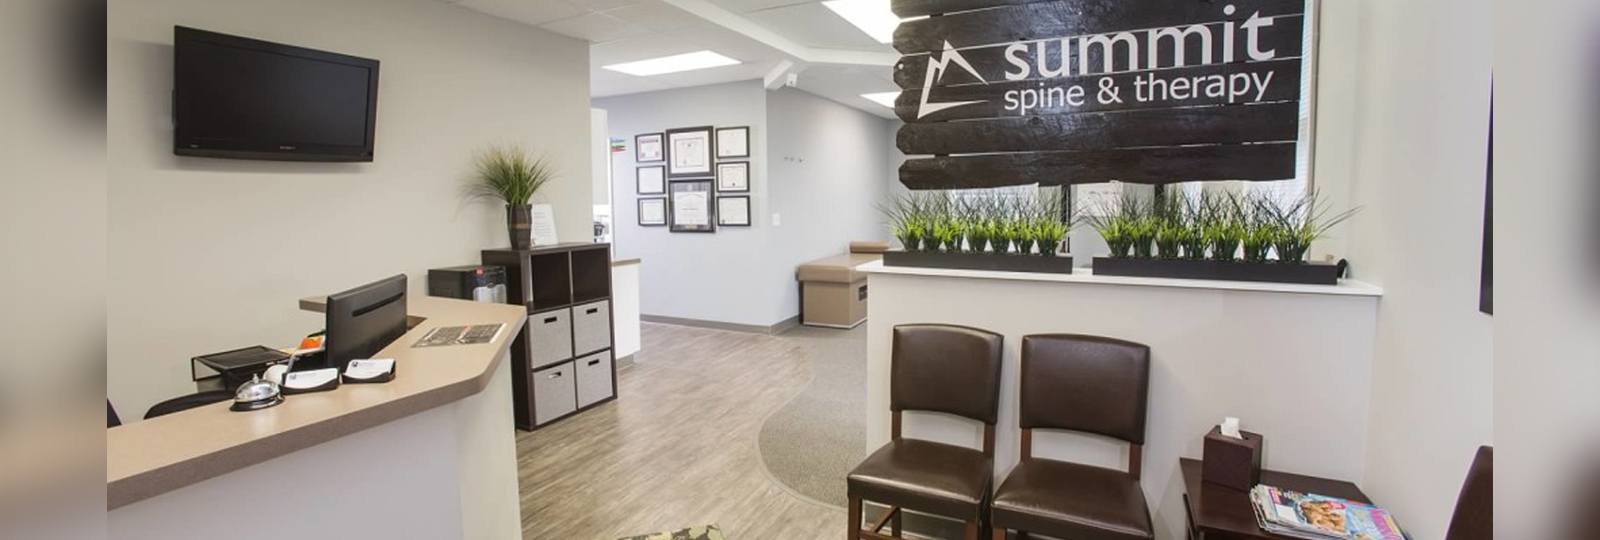 Summit Spine and Therapy Reception Area